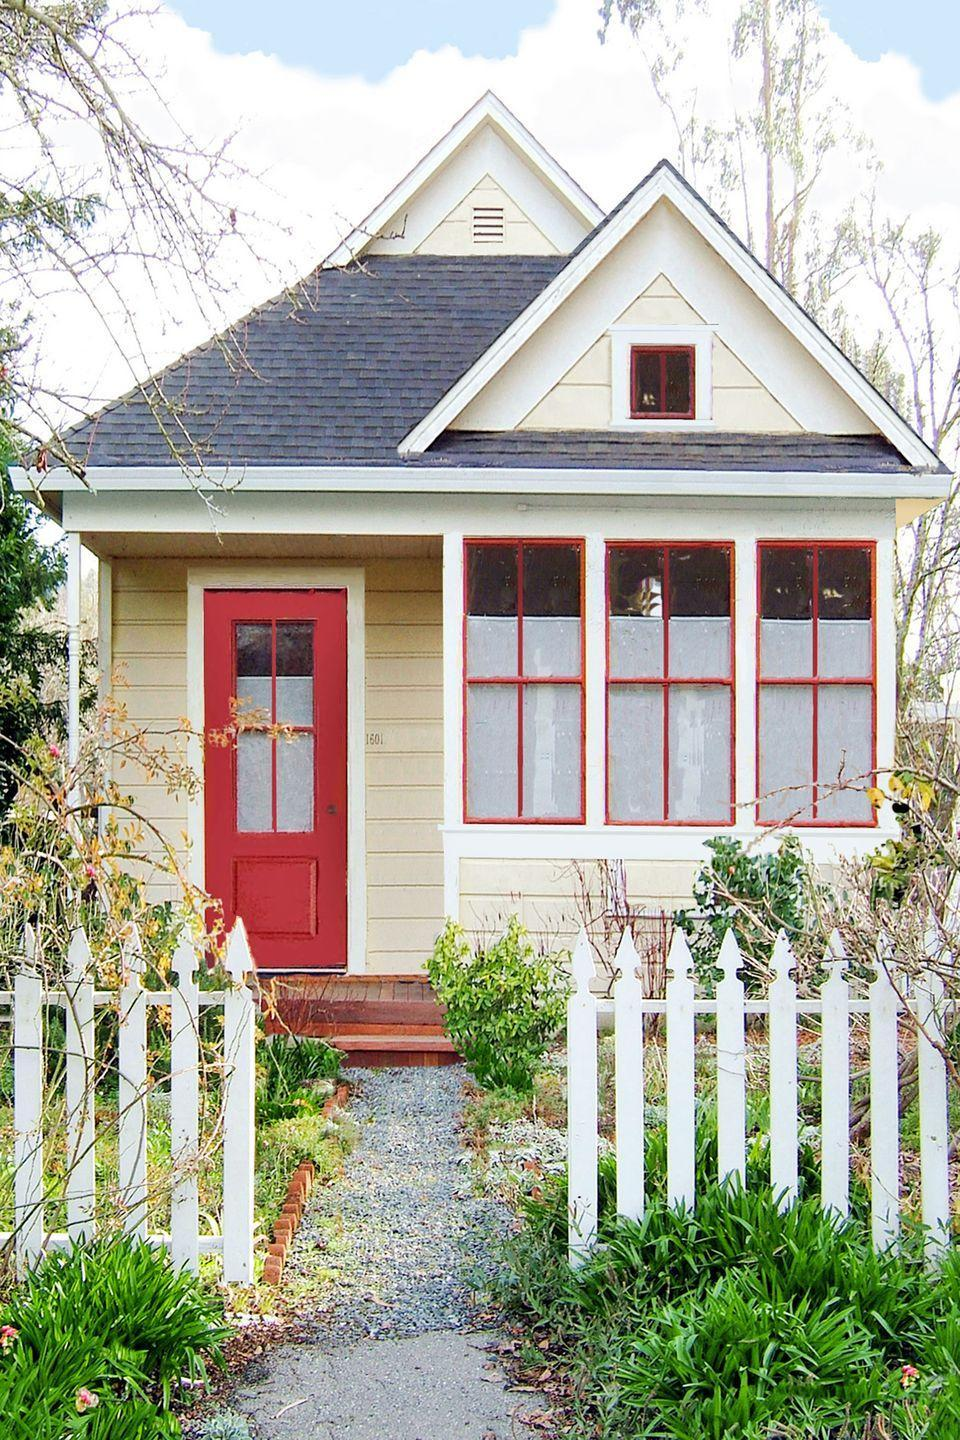 """<p>From $62,950<br></p><p>One of the first tiny house manufacturers, <a href=""""http://www.tumbleweedhouses.com/"""" rel=""""nofollow noopener"""" target=""""_blank"""" data-ylk=""""slk:Tumbleweed Tiny House Company"""" class=""""link rapid-noclick-resp"""">Tumbleweed Tiny House Company</a> now offers travel trailers and prefab cottages starting at 117 square feet. The model pictured here features a bump-out in the front that can be used as a sitting or sleeping area.</p><p><a class=""""link rapid-noclick-resp"""" href=""""https://go.redirectingat.com?id=74968X1596630&url=https%3A%2F%2Fwww.tumbleweedhouses.com%2Fpages%2Fcottages%2F&sref=https%3A%2F%2Fwww.oprahdaily.com%2Flife%2Fg35047961%2Ftiny-house%2F"""" rel=""""nofollow noopener"""" target=""""_blank"""" data-ylk=""""slk:SHOP NOW"""">SHOP NOW</a></p>"""